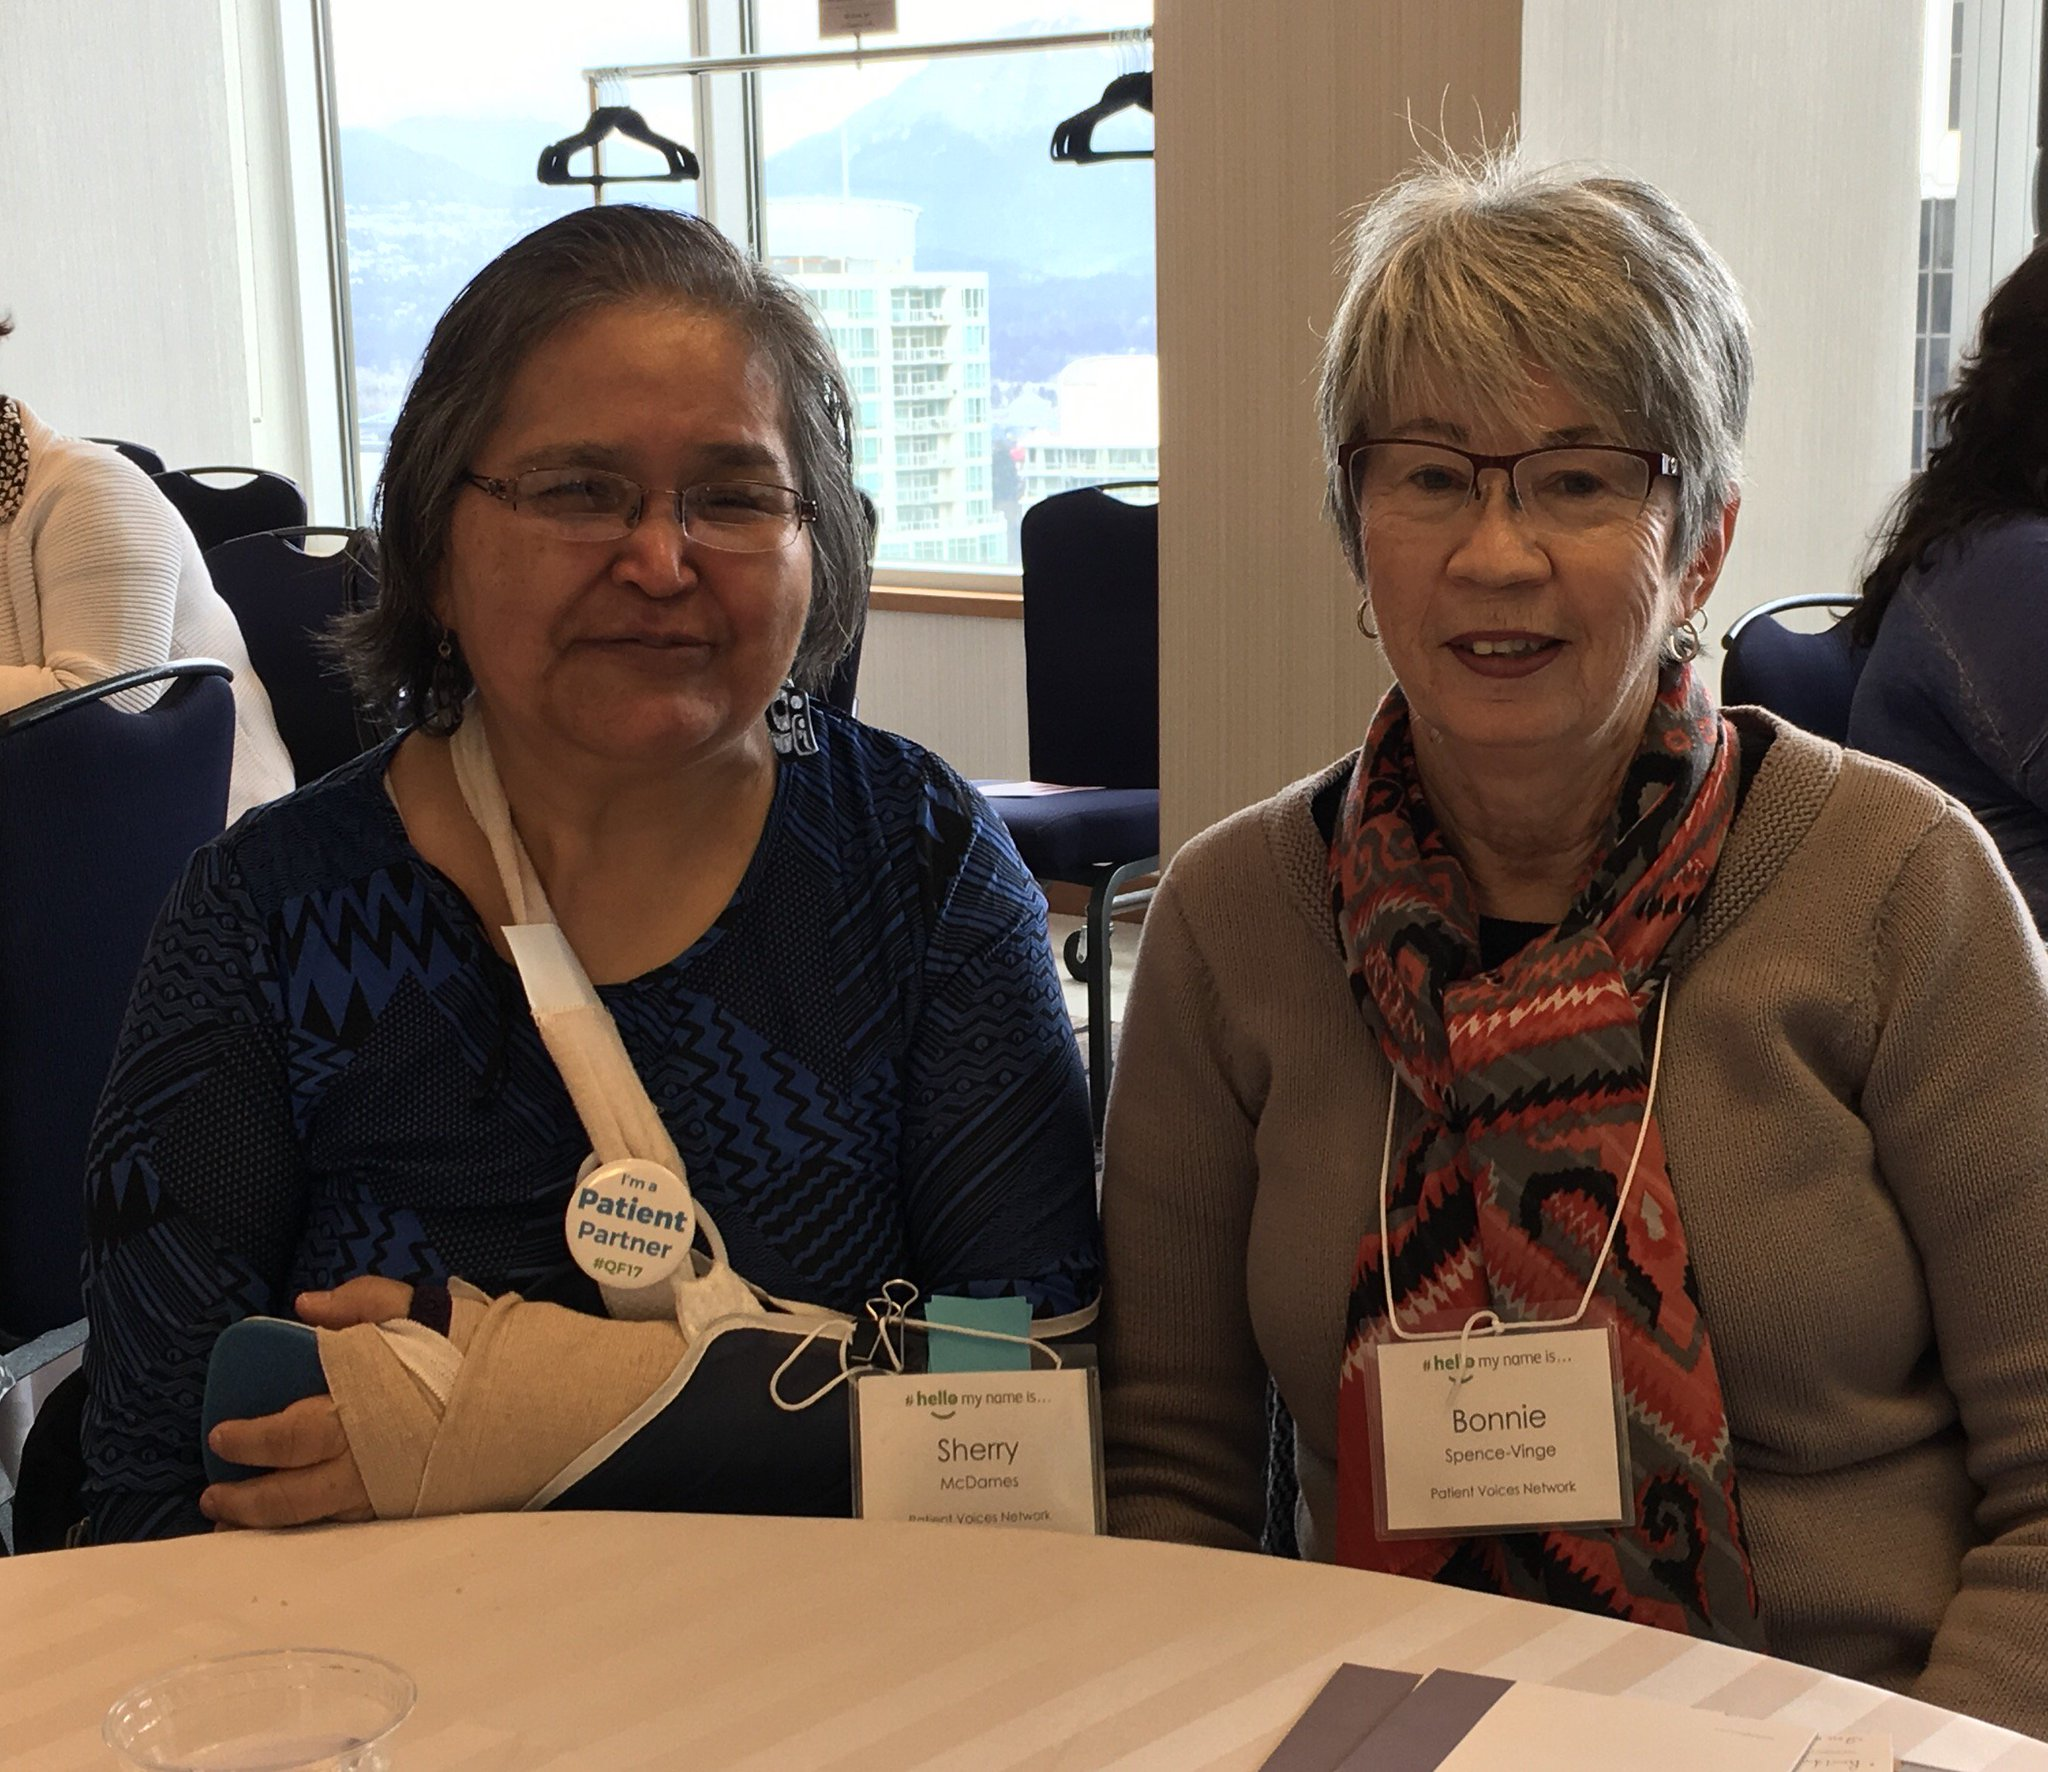 Our #pt partner Sherry & Bonnie are ready to learn abt tools for self-reflection, change & transformation at one of the #QF17 sessions! https://t.co/PyRpRlN2w0